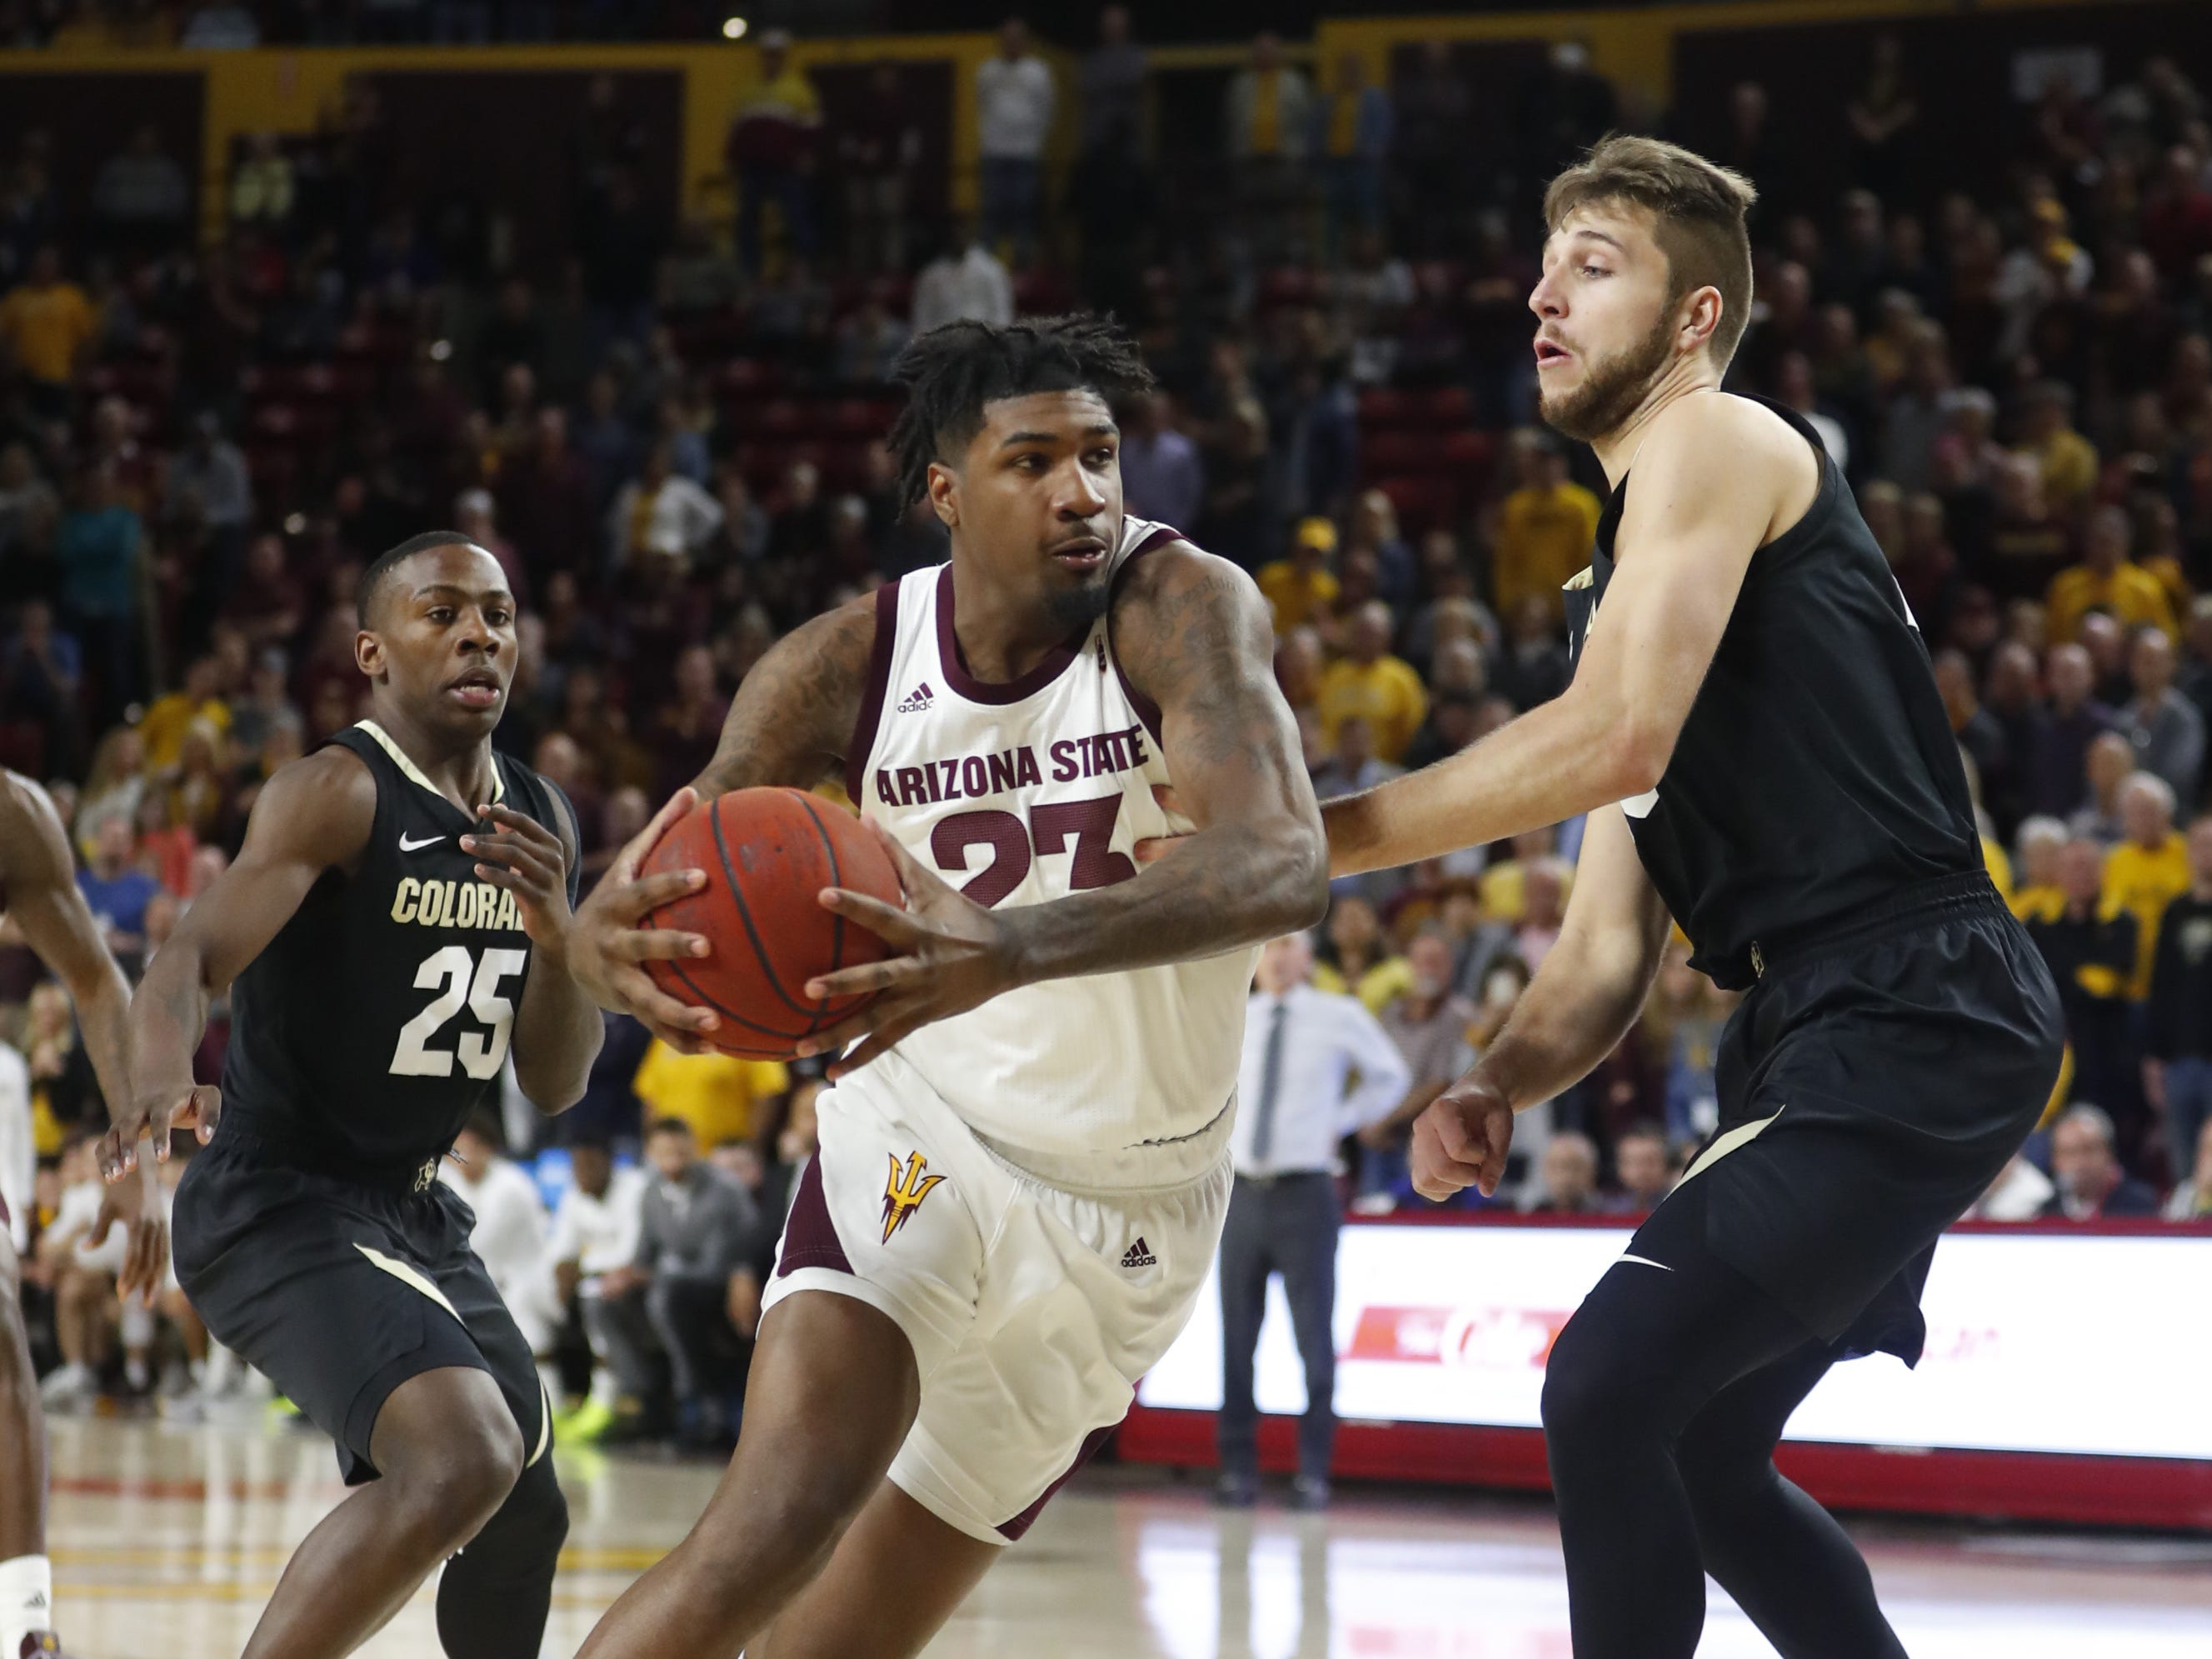 ASU's Romello White (23) drives against Colorado's Lucas Siewert (23) during the first half at Wells Fargo Arena in Tempe, Ariz. on January 5, 2019.